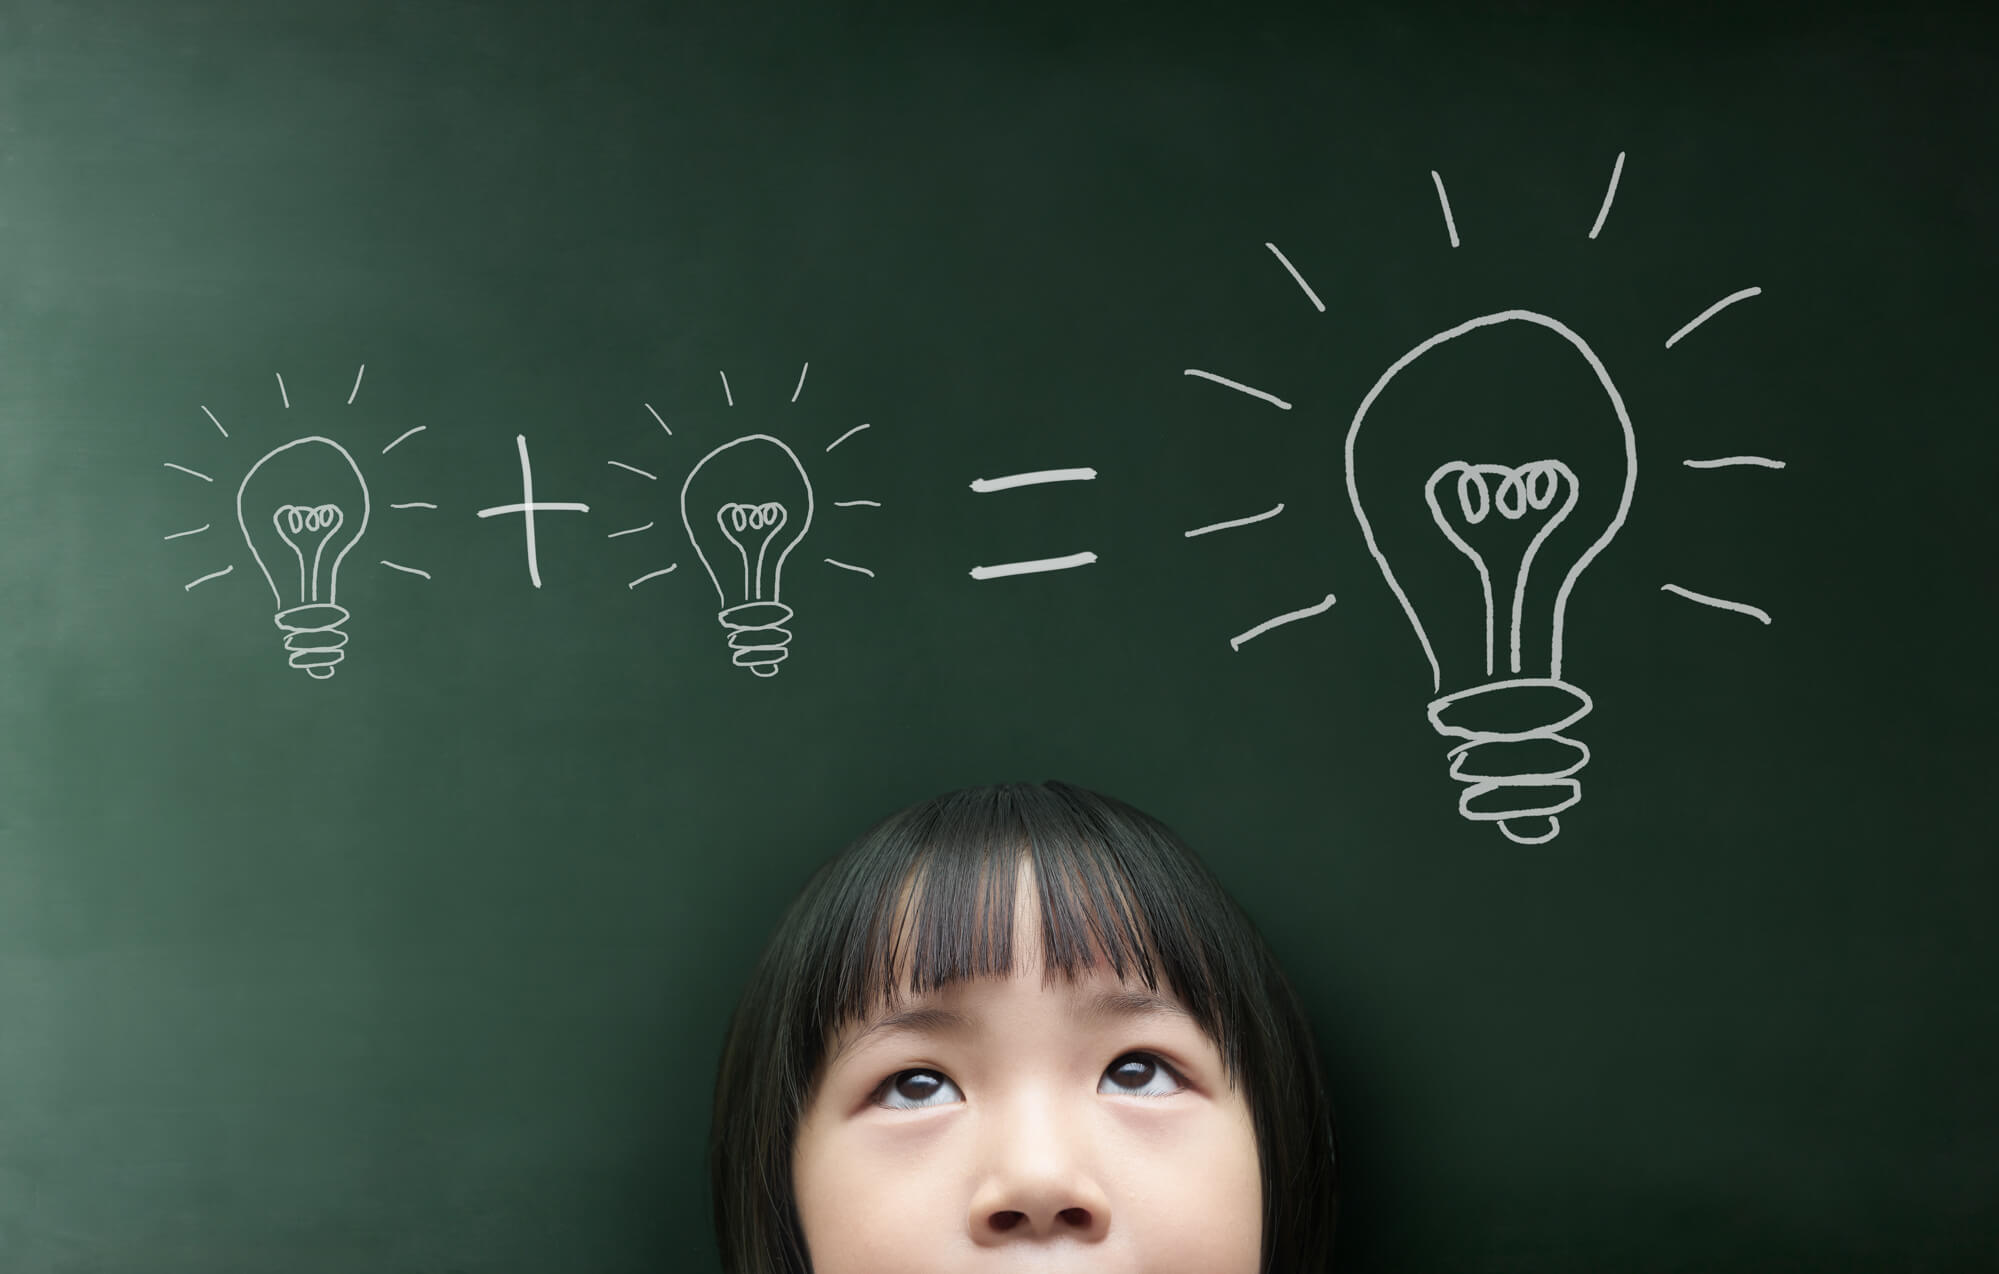 ideas, innovations, concept, girl, Asian, blackboard, light bulb